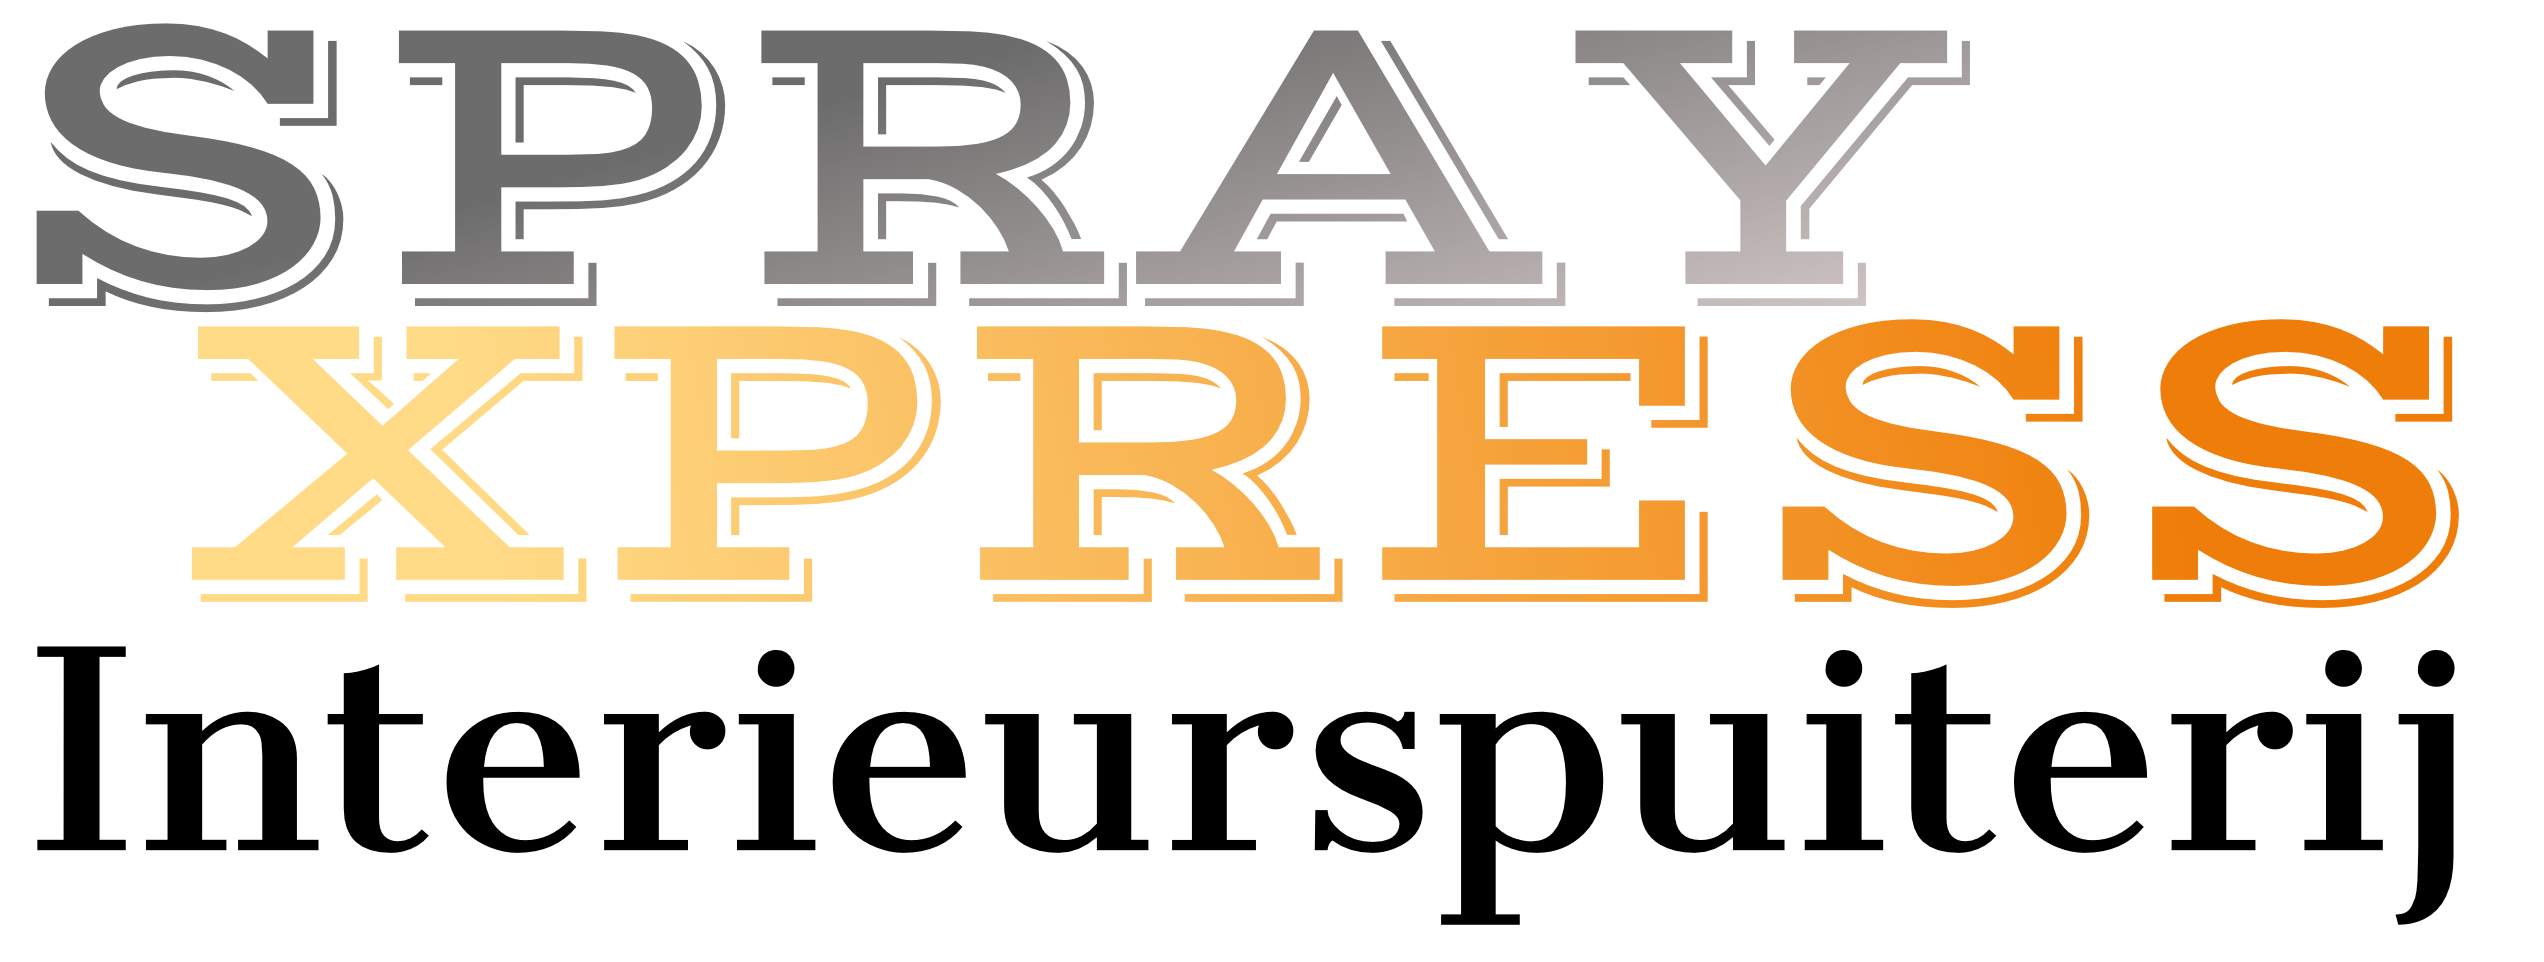 Spray Xpress logo